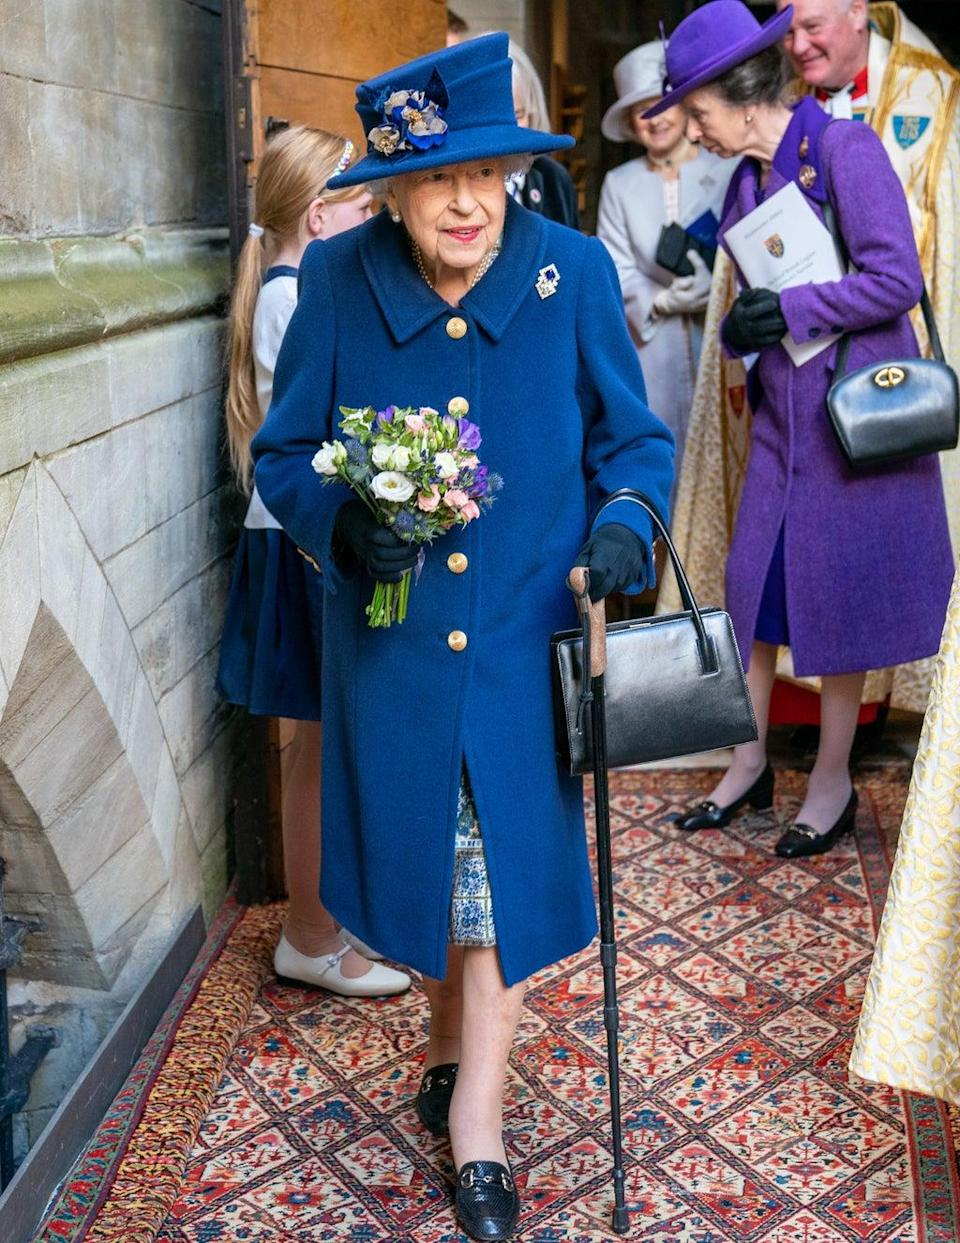 The Queen used a walking stick at Westminster Abbey on Tuesday (Arthur Edwards/The Sun/PA) (PA Wire)